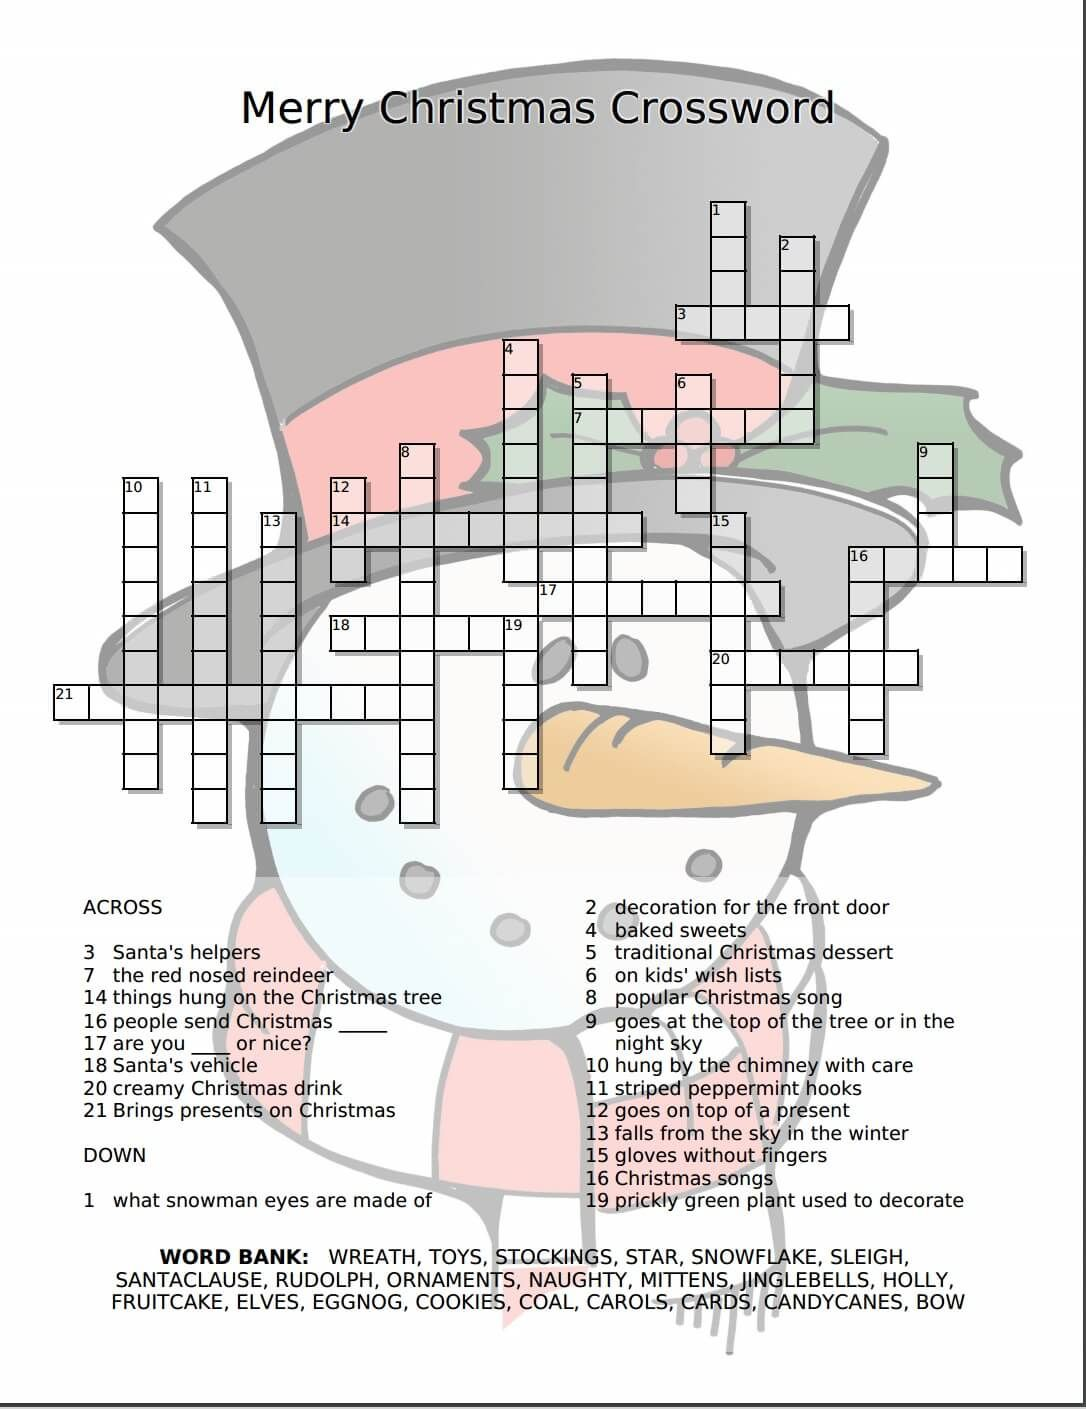 Christmas crossword elf on the shelf help via merry120 freebies a fun and easy and free christmas crossword puzzle perfect for your elf on the shelf to leave for your kids biocorpaavc Gallery